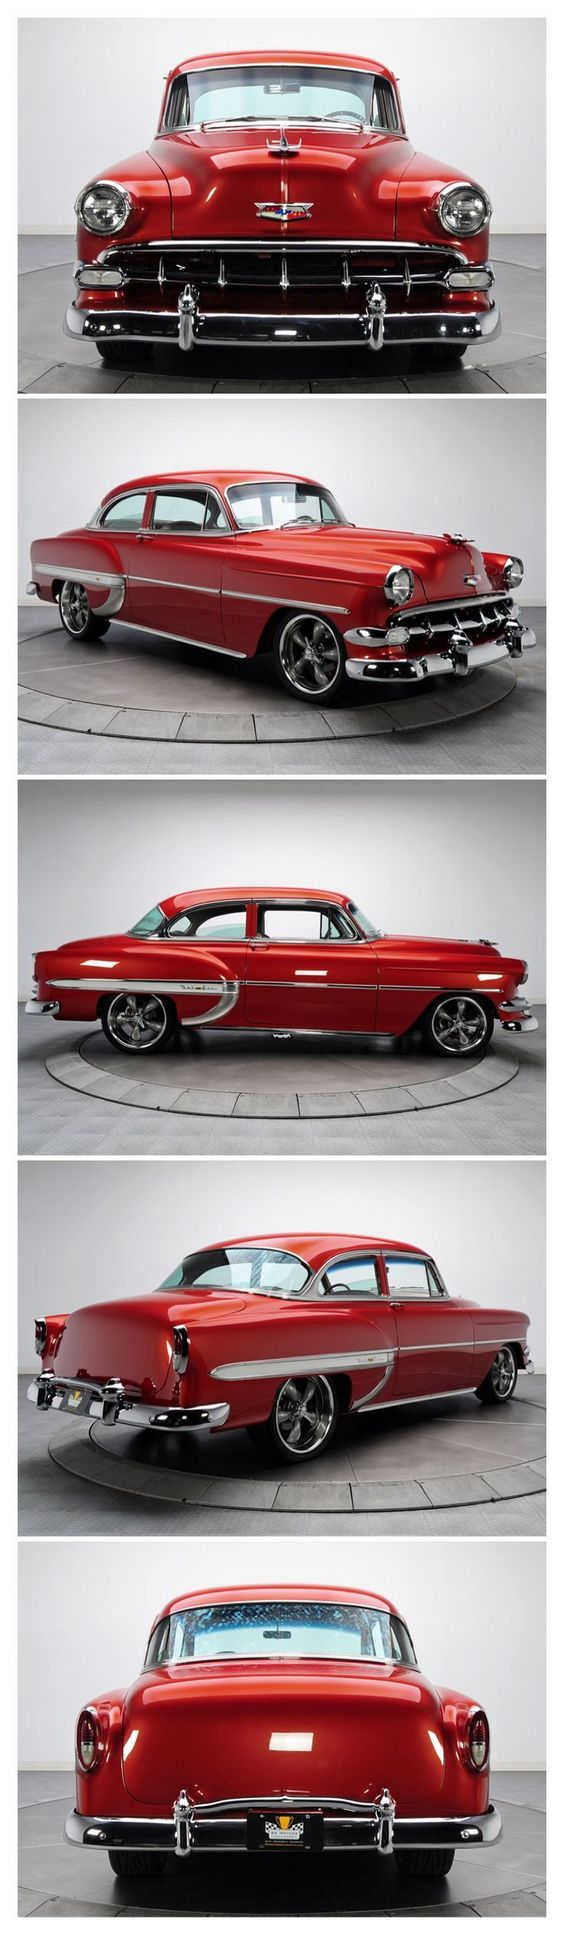 1956 bel air for sale submited images -  58 Chevrolet Bel Air Impala Yummmm If It S Going To Be Black Put Some Chrome On That Thing Cars Pinterest Chevrolet Bel Air Bel Air And Chevrolet